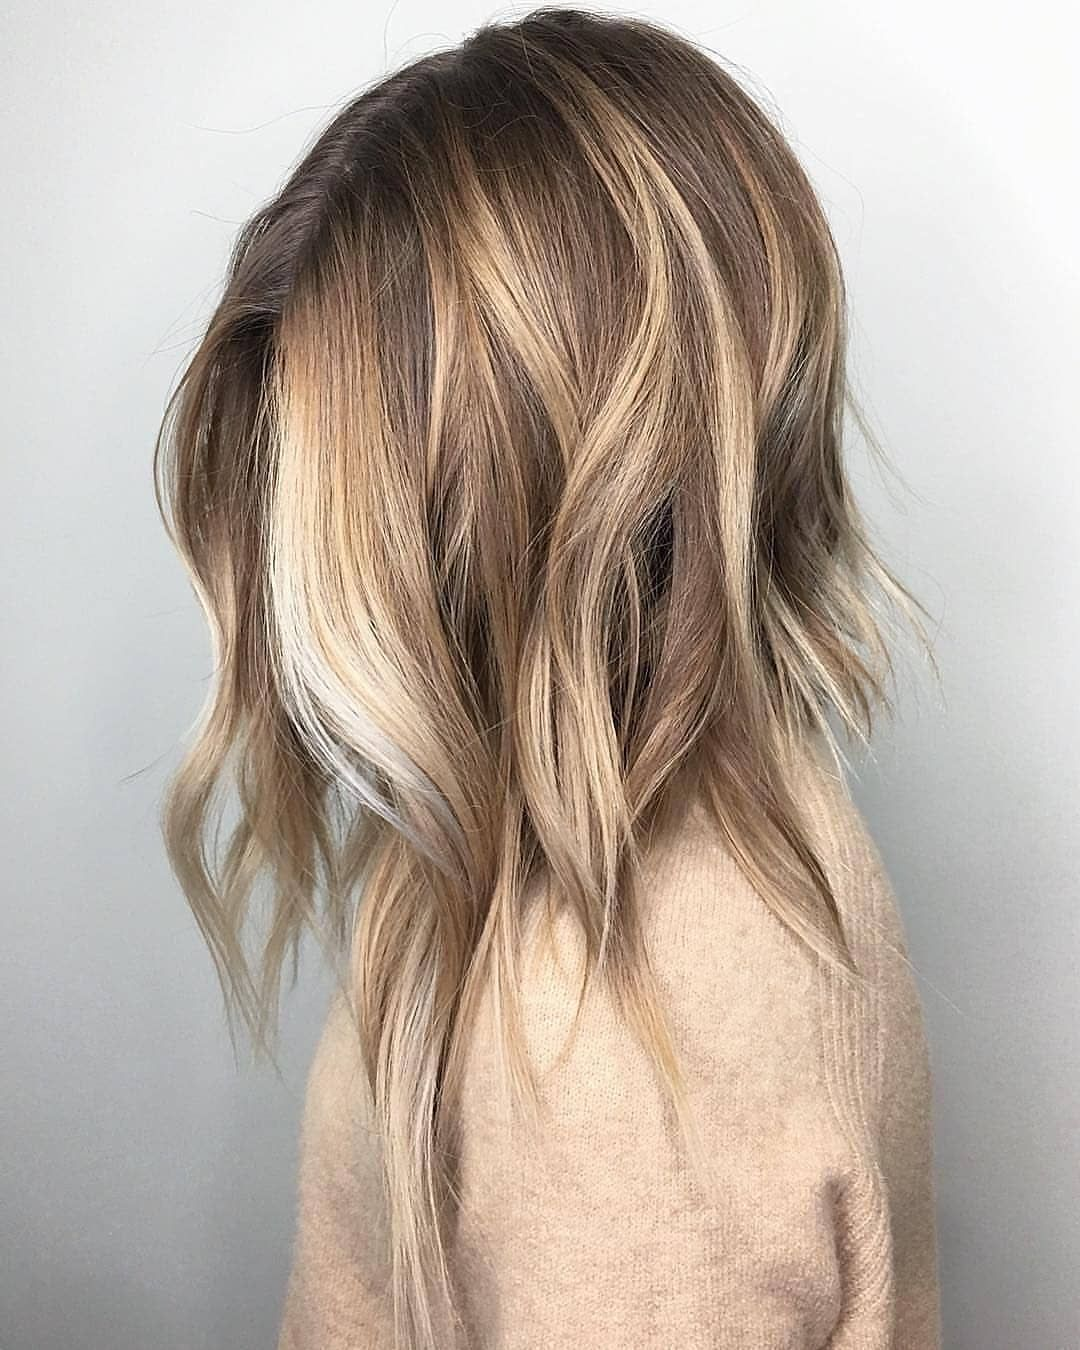 10 Medium To Long Hairstyles In Exciting Blonde Colors Women